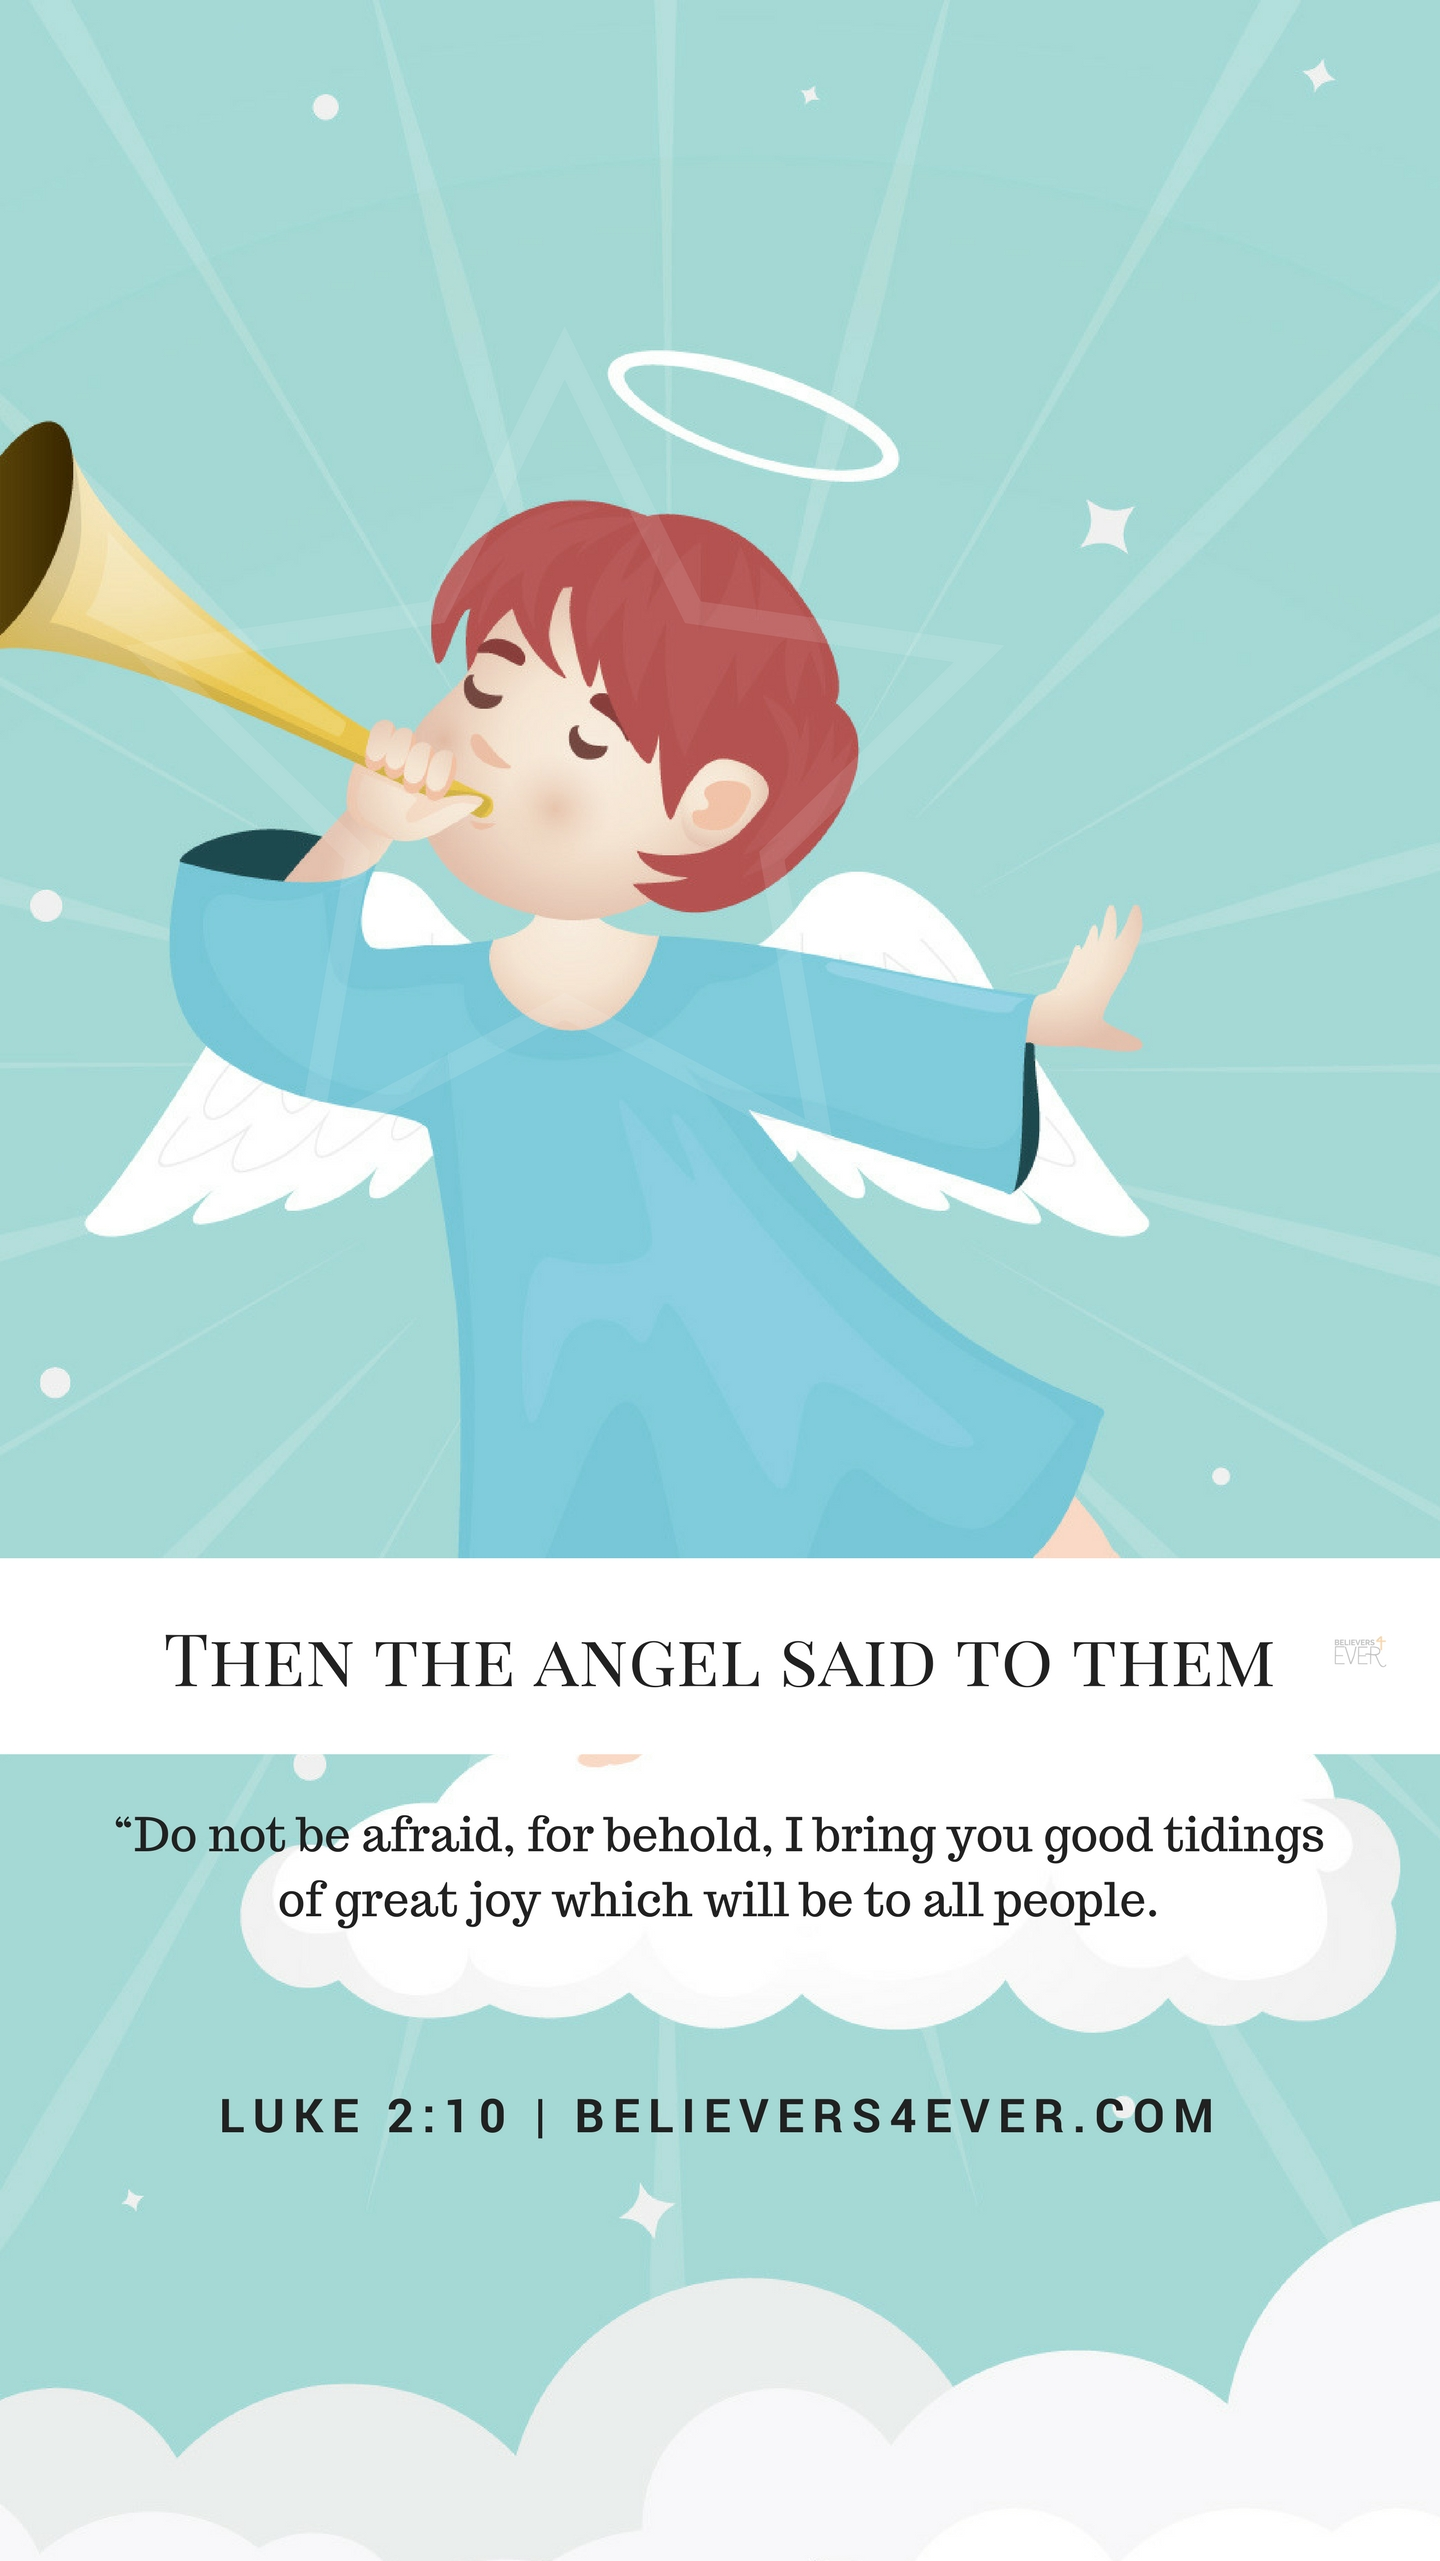 Then the angel said to them mobile wallpaper